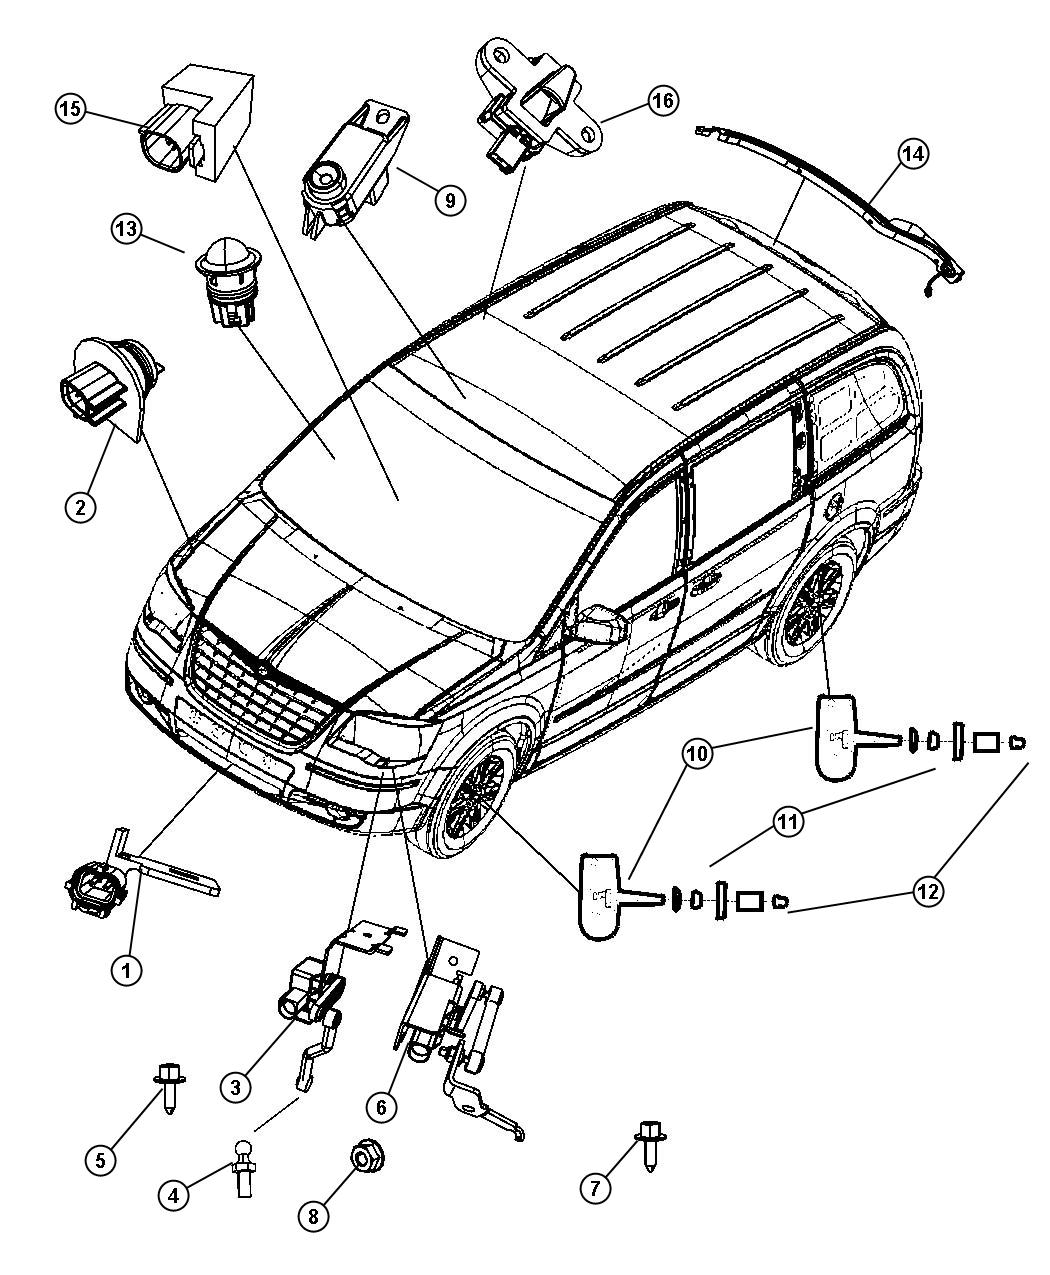 2000 dodge neon fuse 7 wiring diagram 2000 discover your wiring wiring diagram